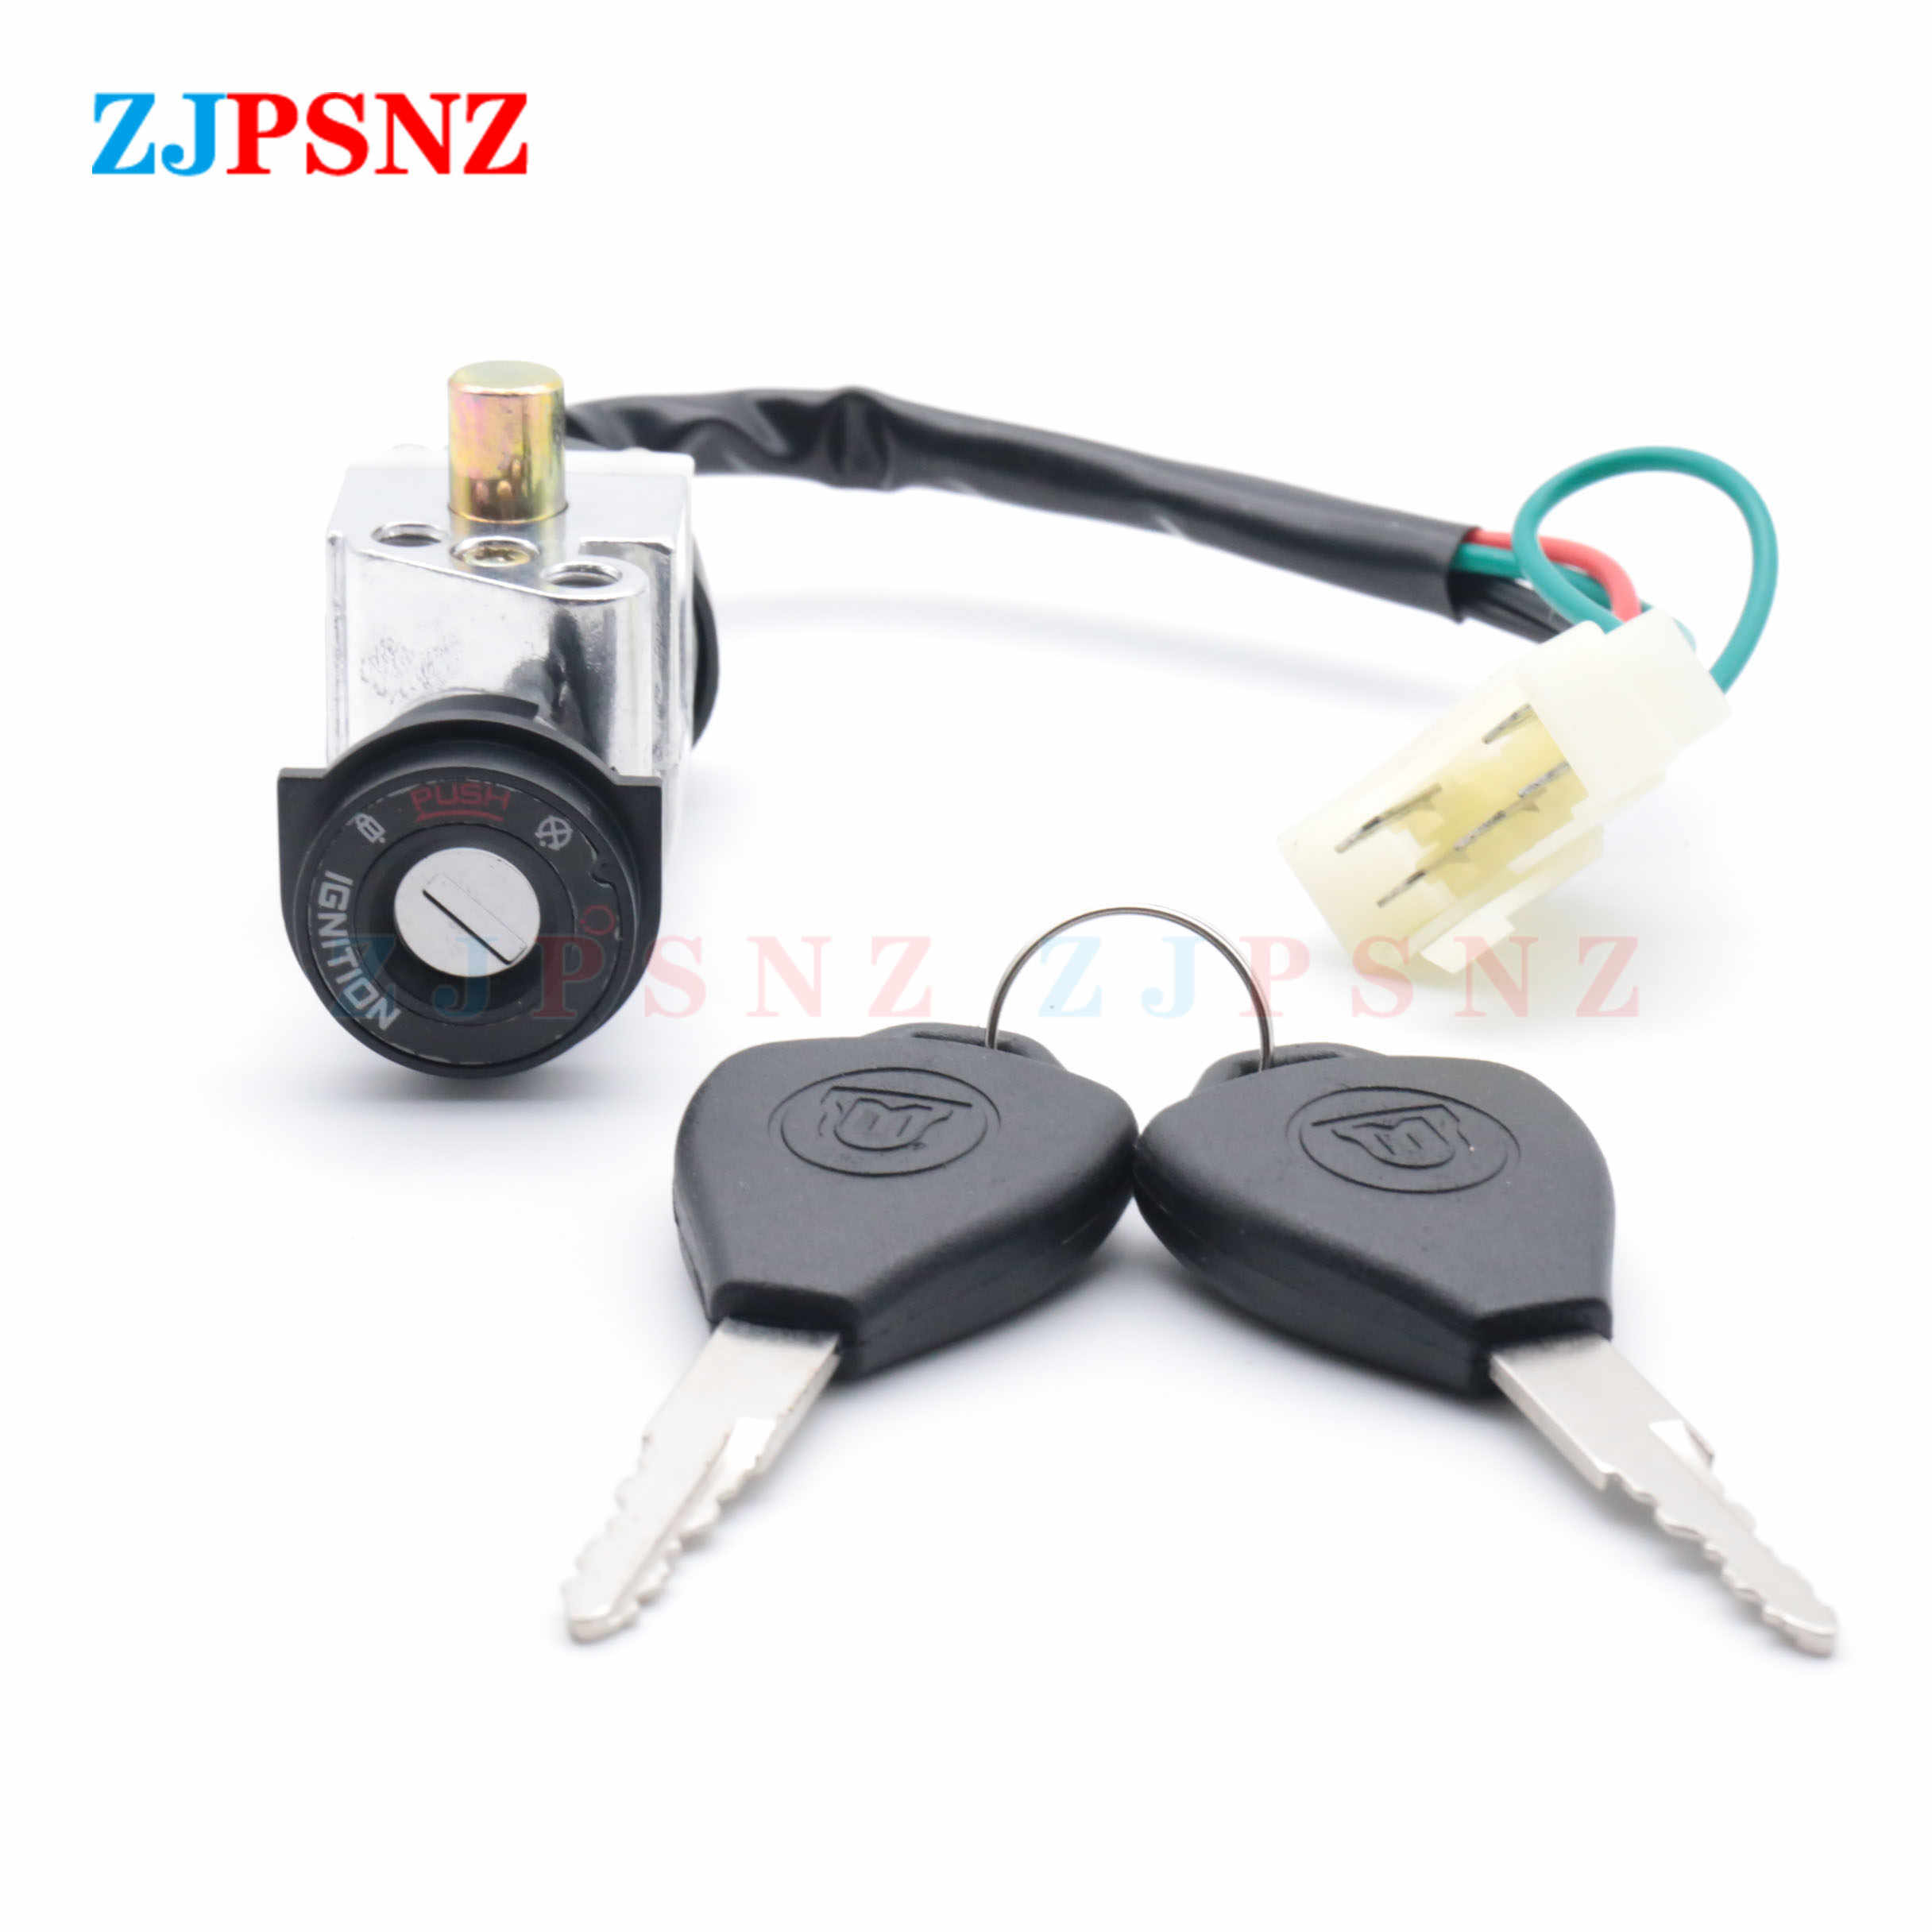 Universal Motorcycle Switch Key Faucet Lock Head Lock Electric Door Lock 5 Wires For GY6 CG125 Motorcycle ATV Scooters Ignition